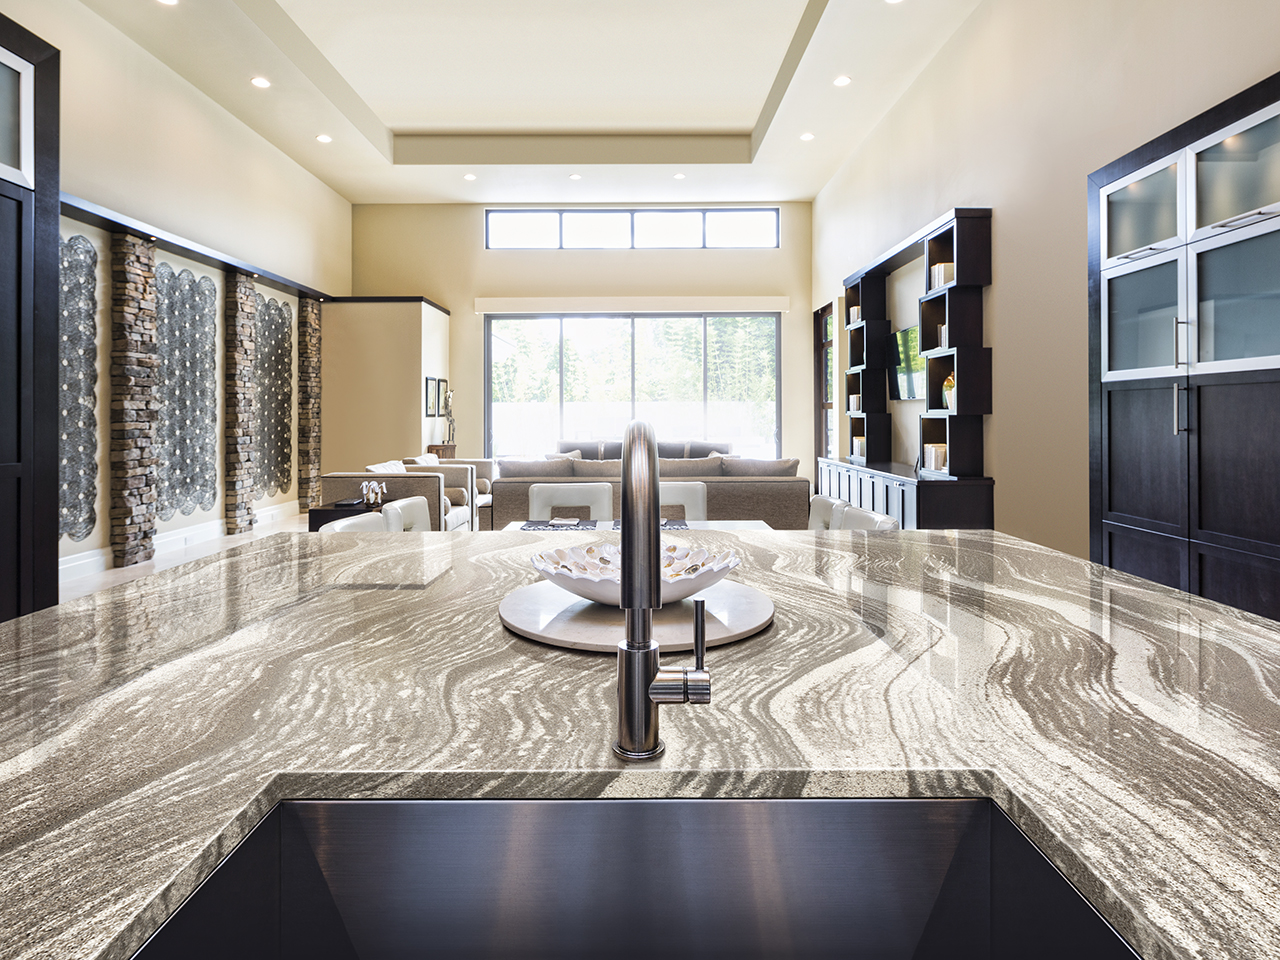 monarch kitchen bath centre cambria adds two new countertop designs to their oceanic collection. Black Bedroom Furniture Sets. Home Design Ideas